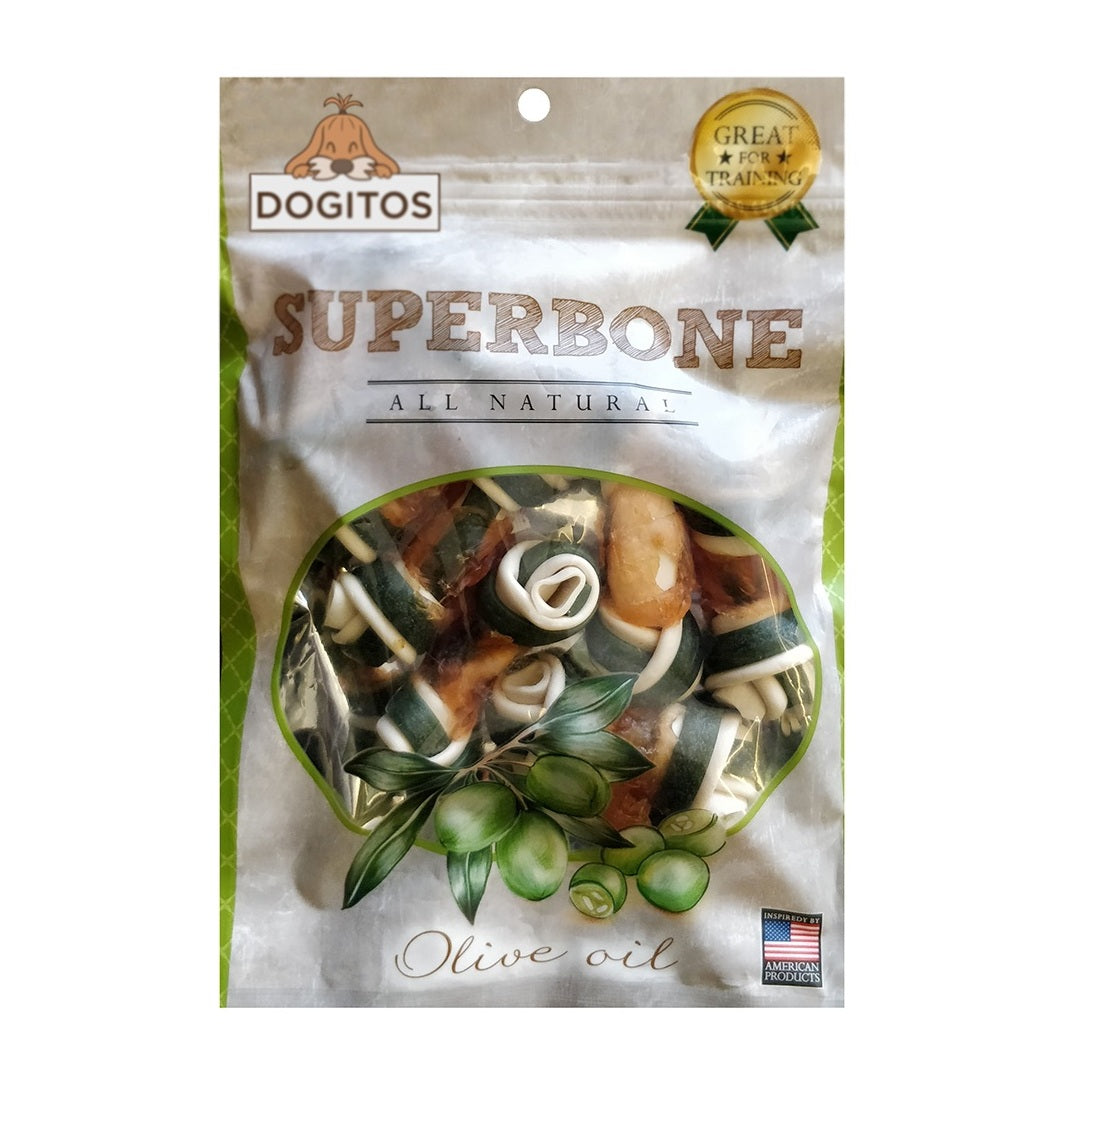 Dogitos Knotted Chicken Superbone with Olive Oil 7 in 1 Dog Treat (185 gm)